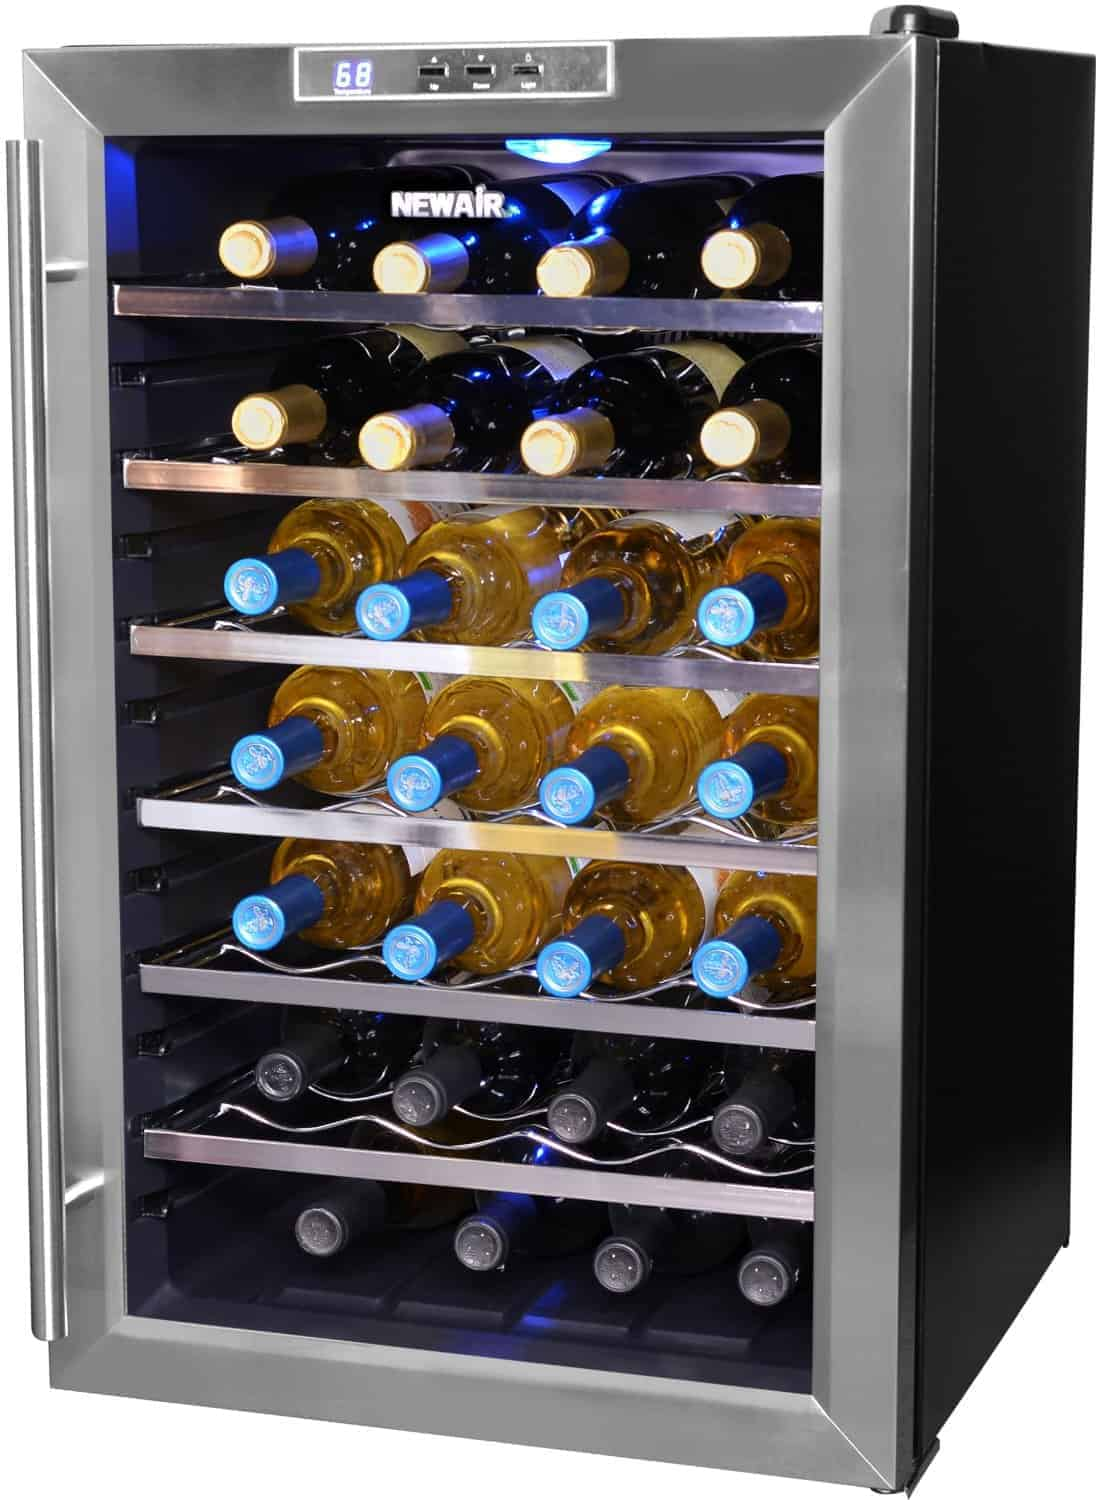 NewAir NewAir Thermoelectric Wine Cooler